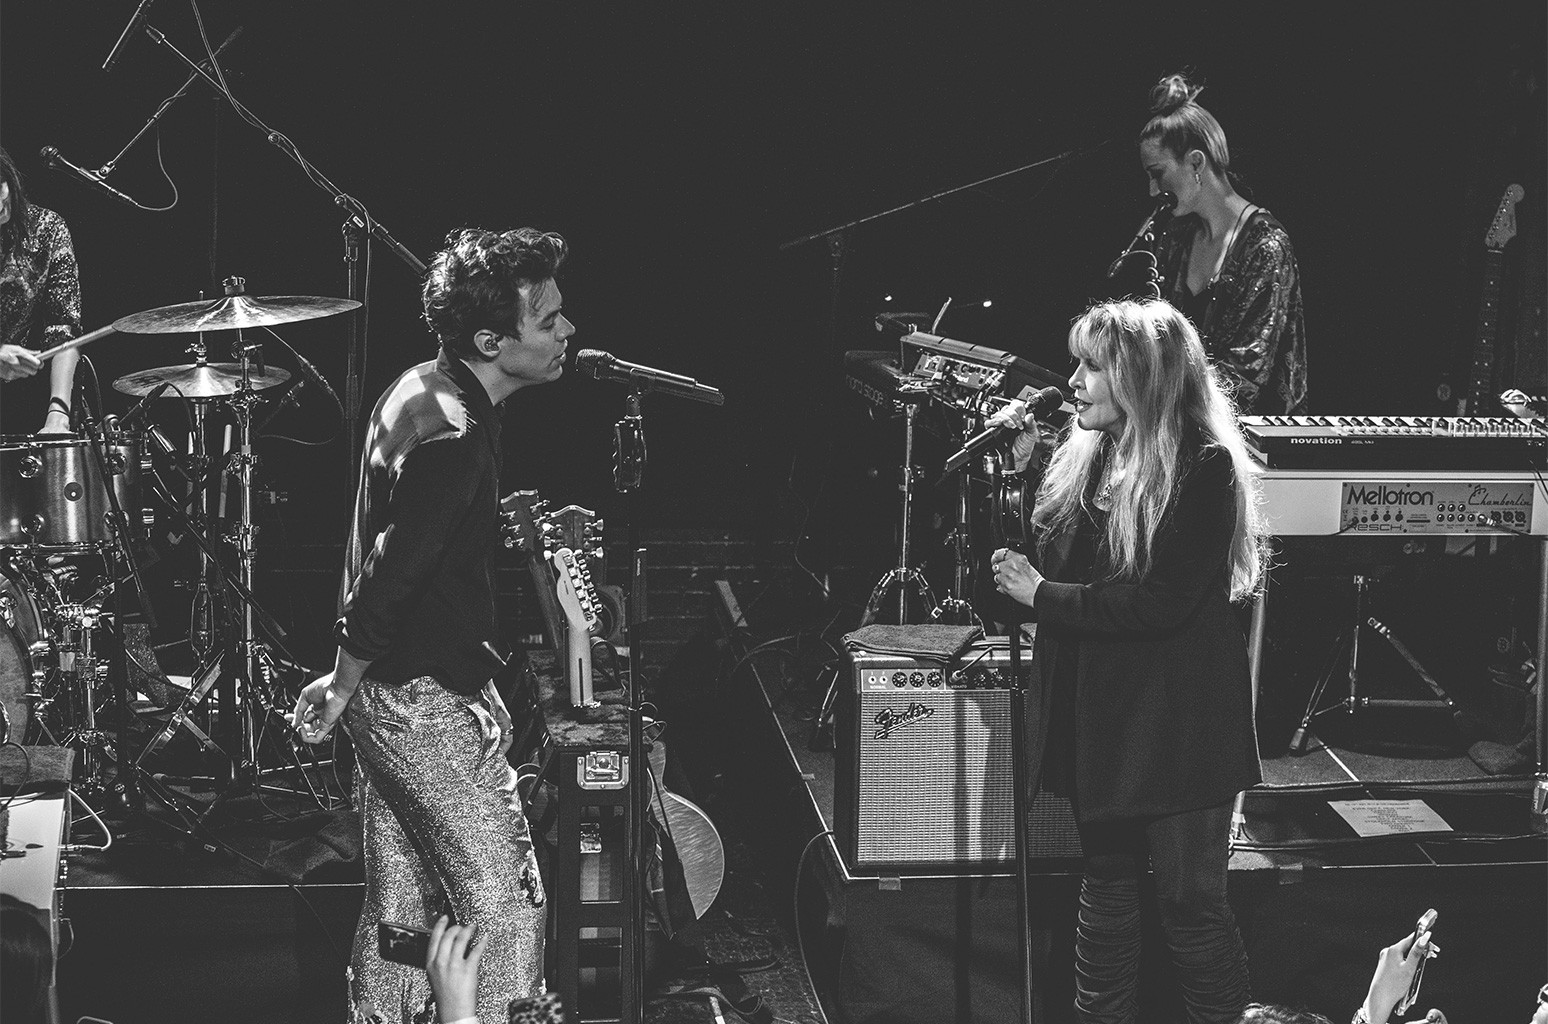 Harry Styles and Stevie Nicks onstage at The Troubadour on May 19, 2017 in Los Angeles.